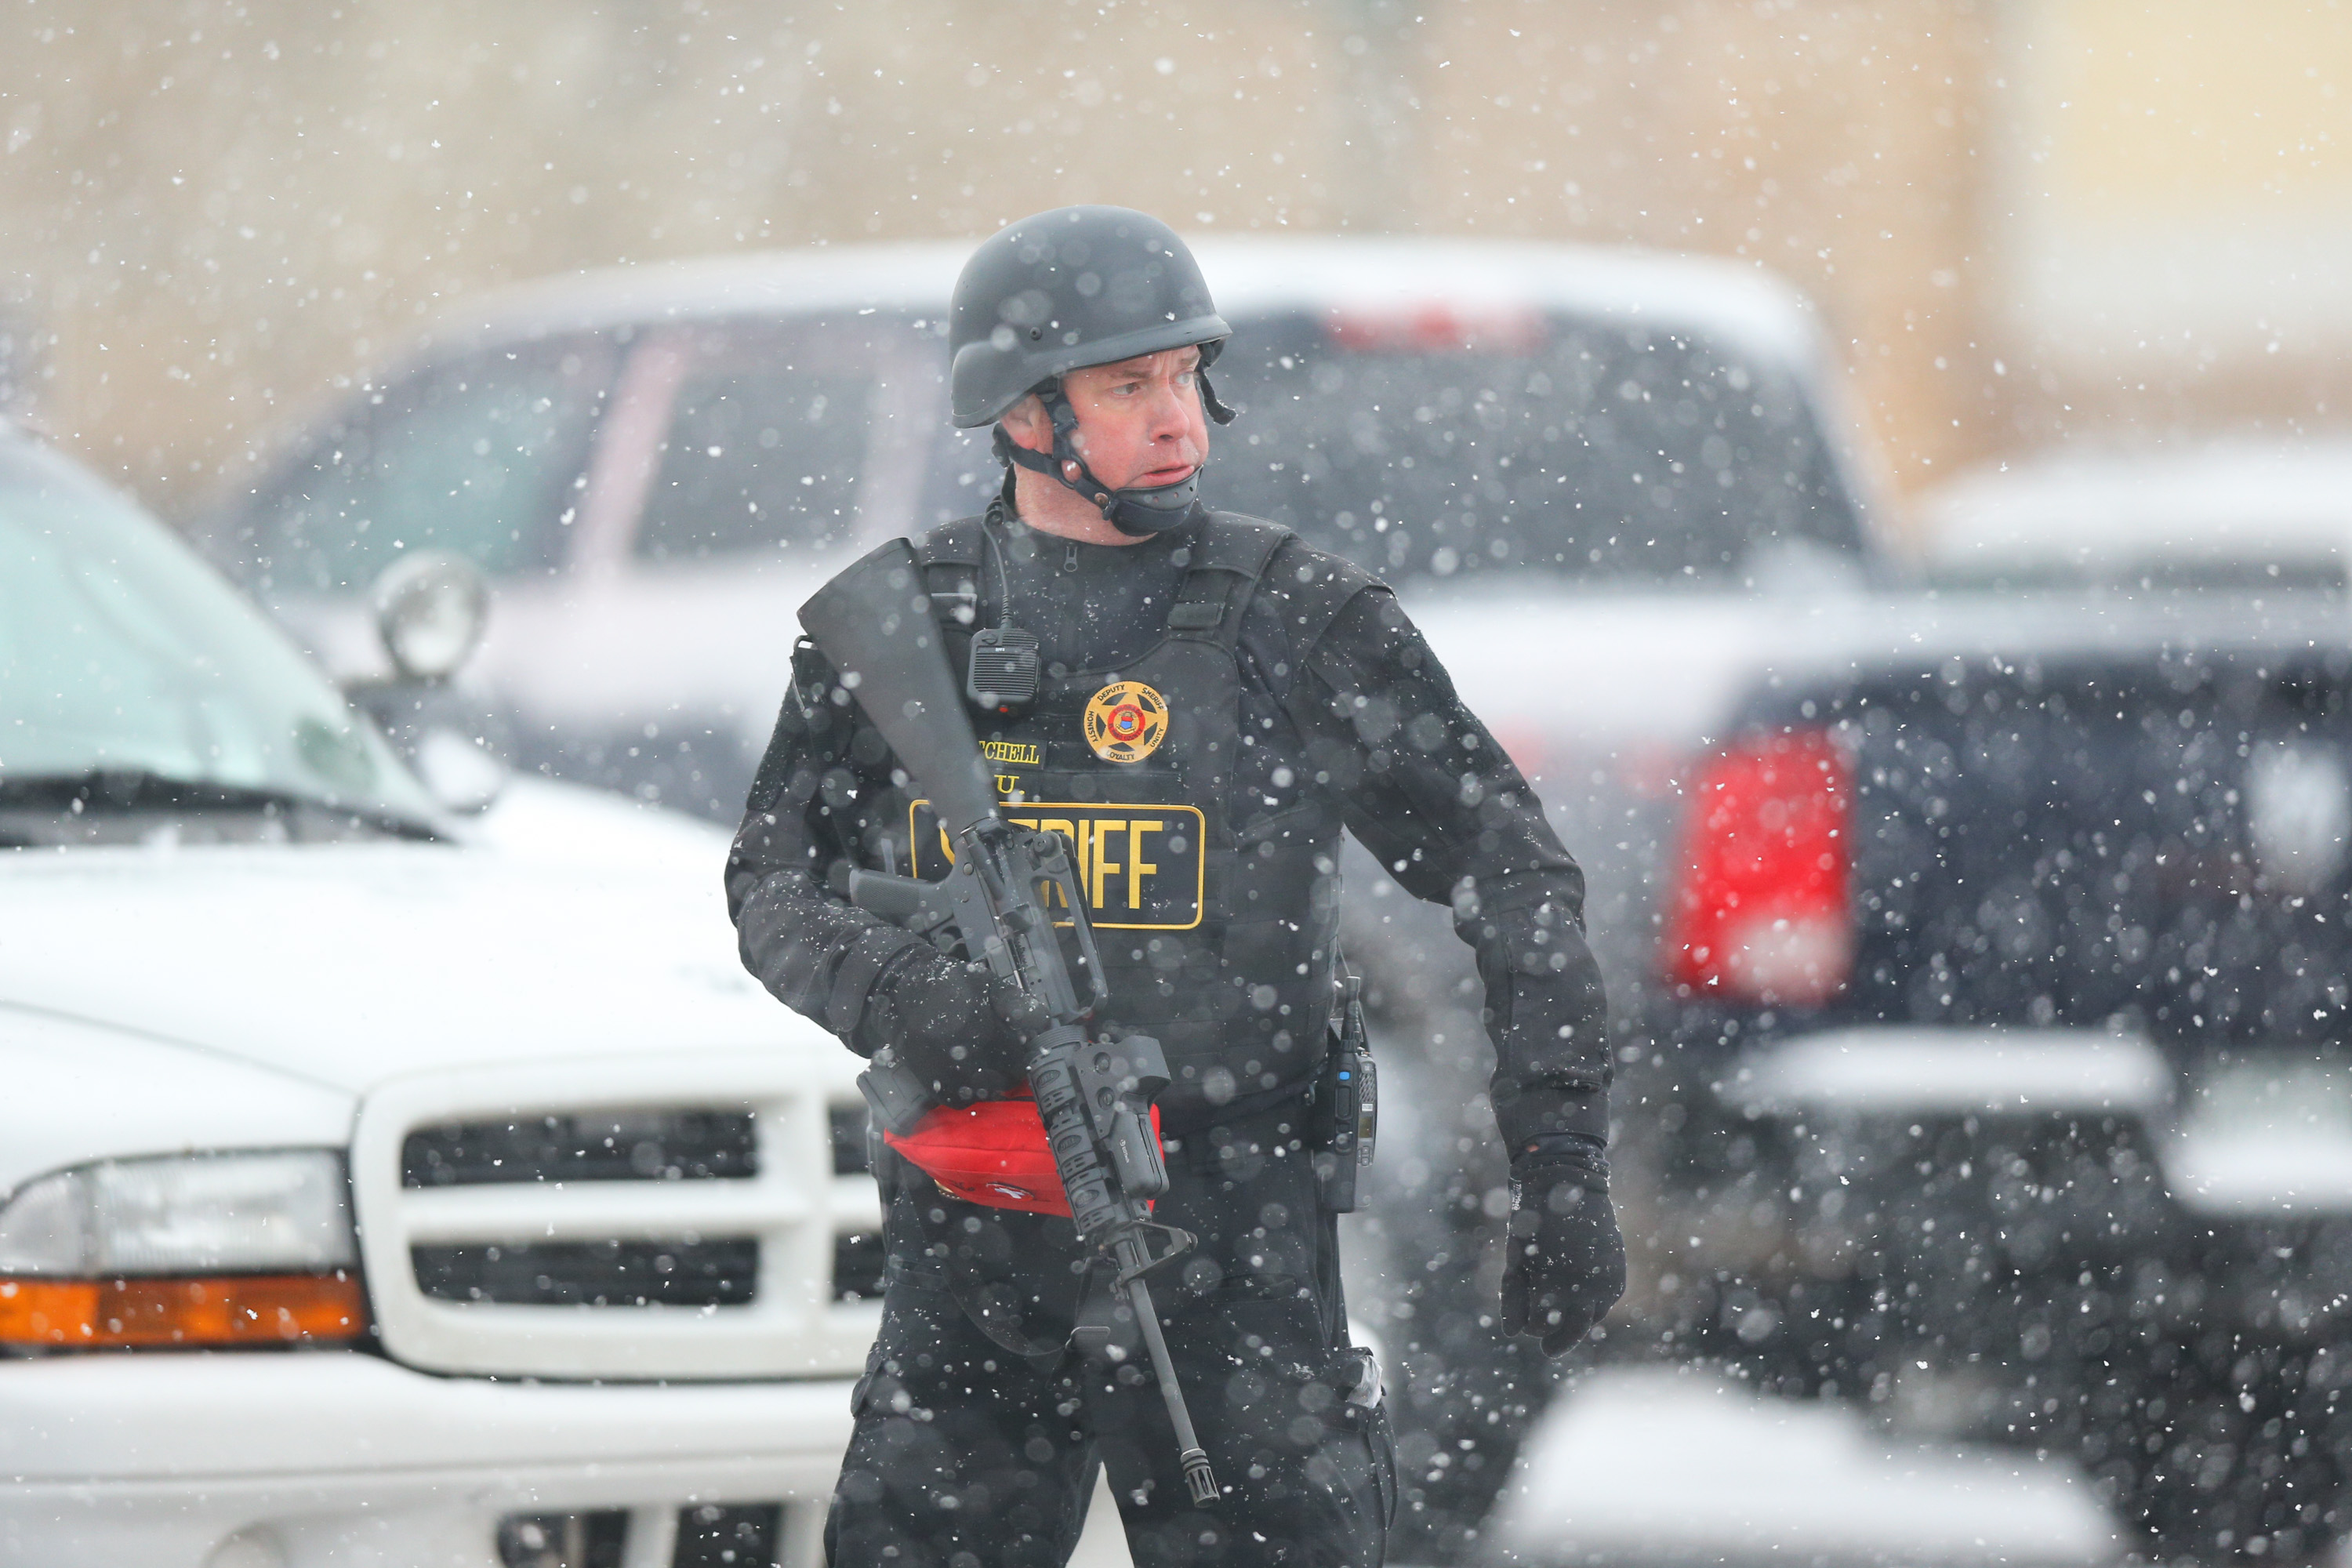 A member of the Colorado Springs sheriff's department secures the scene during an active shooter situation at a Planned Parenthood facility. (Getty)